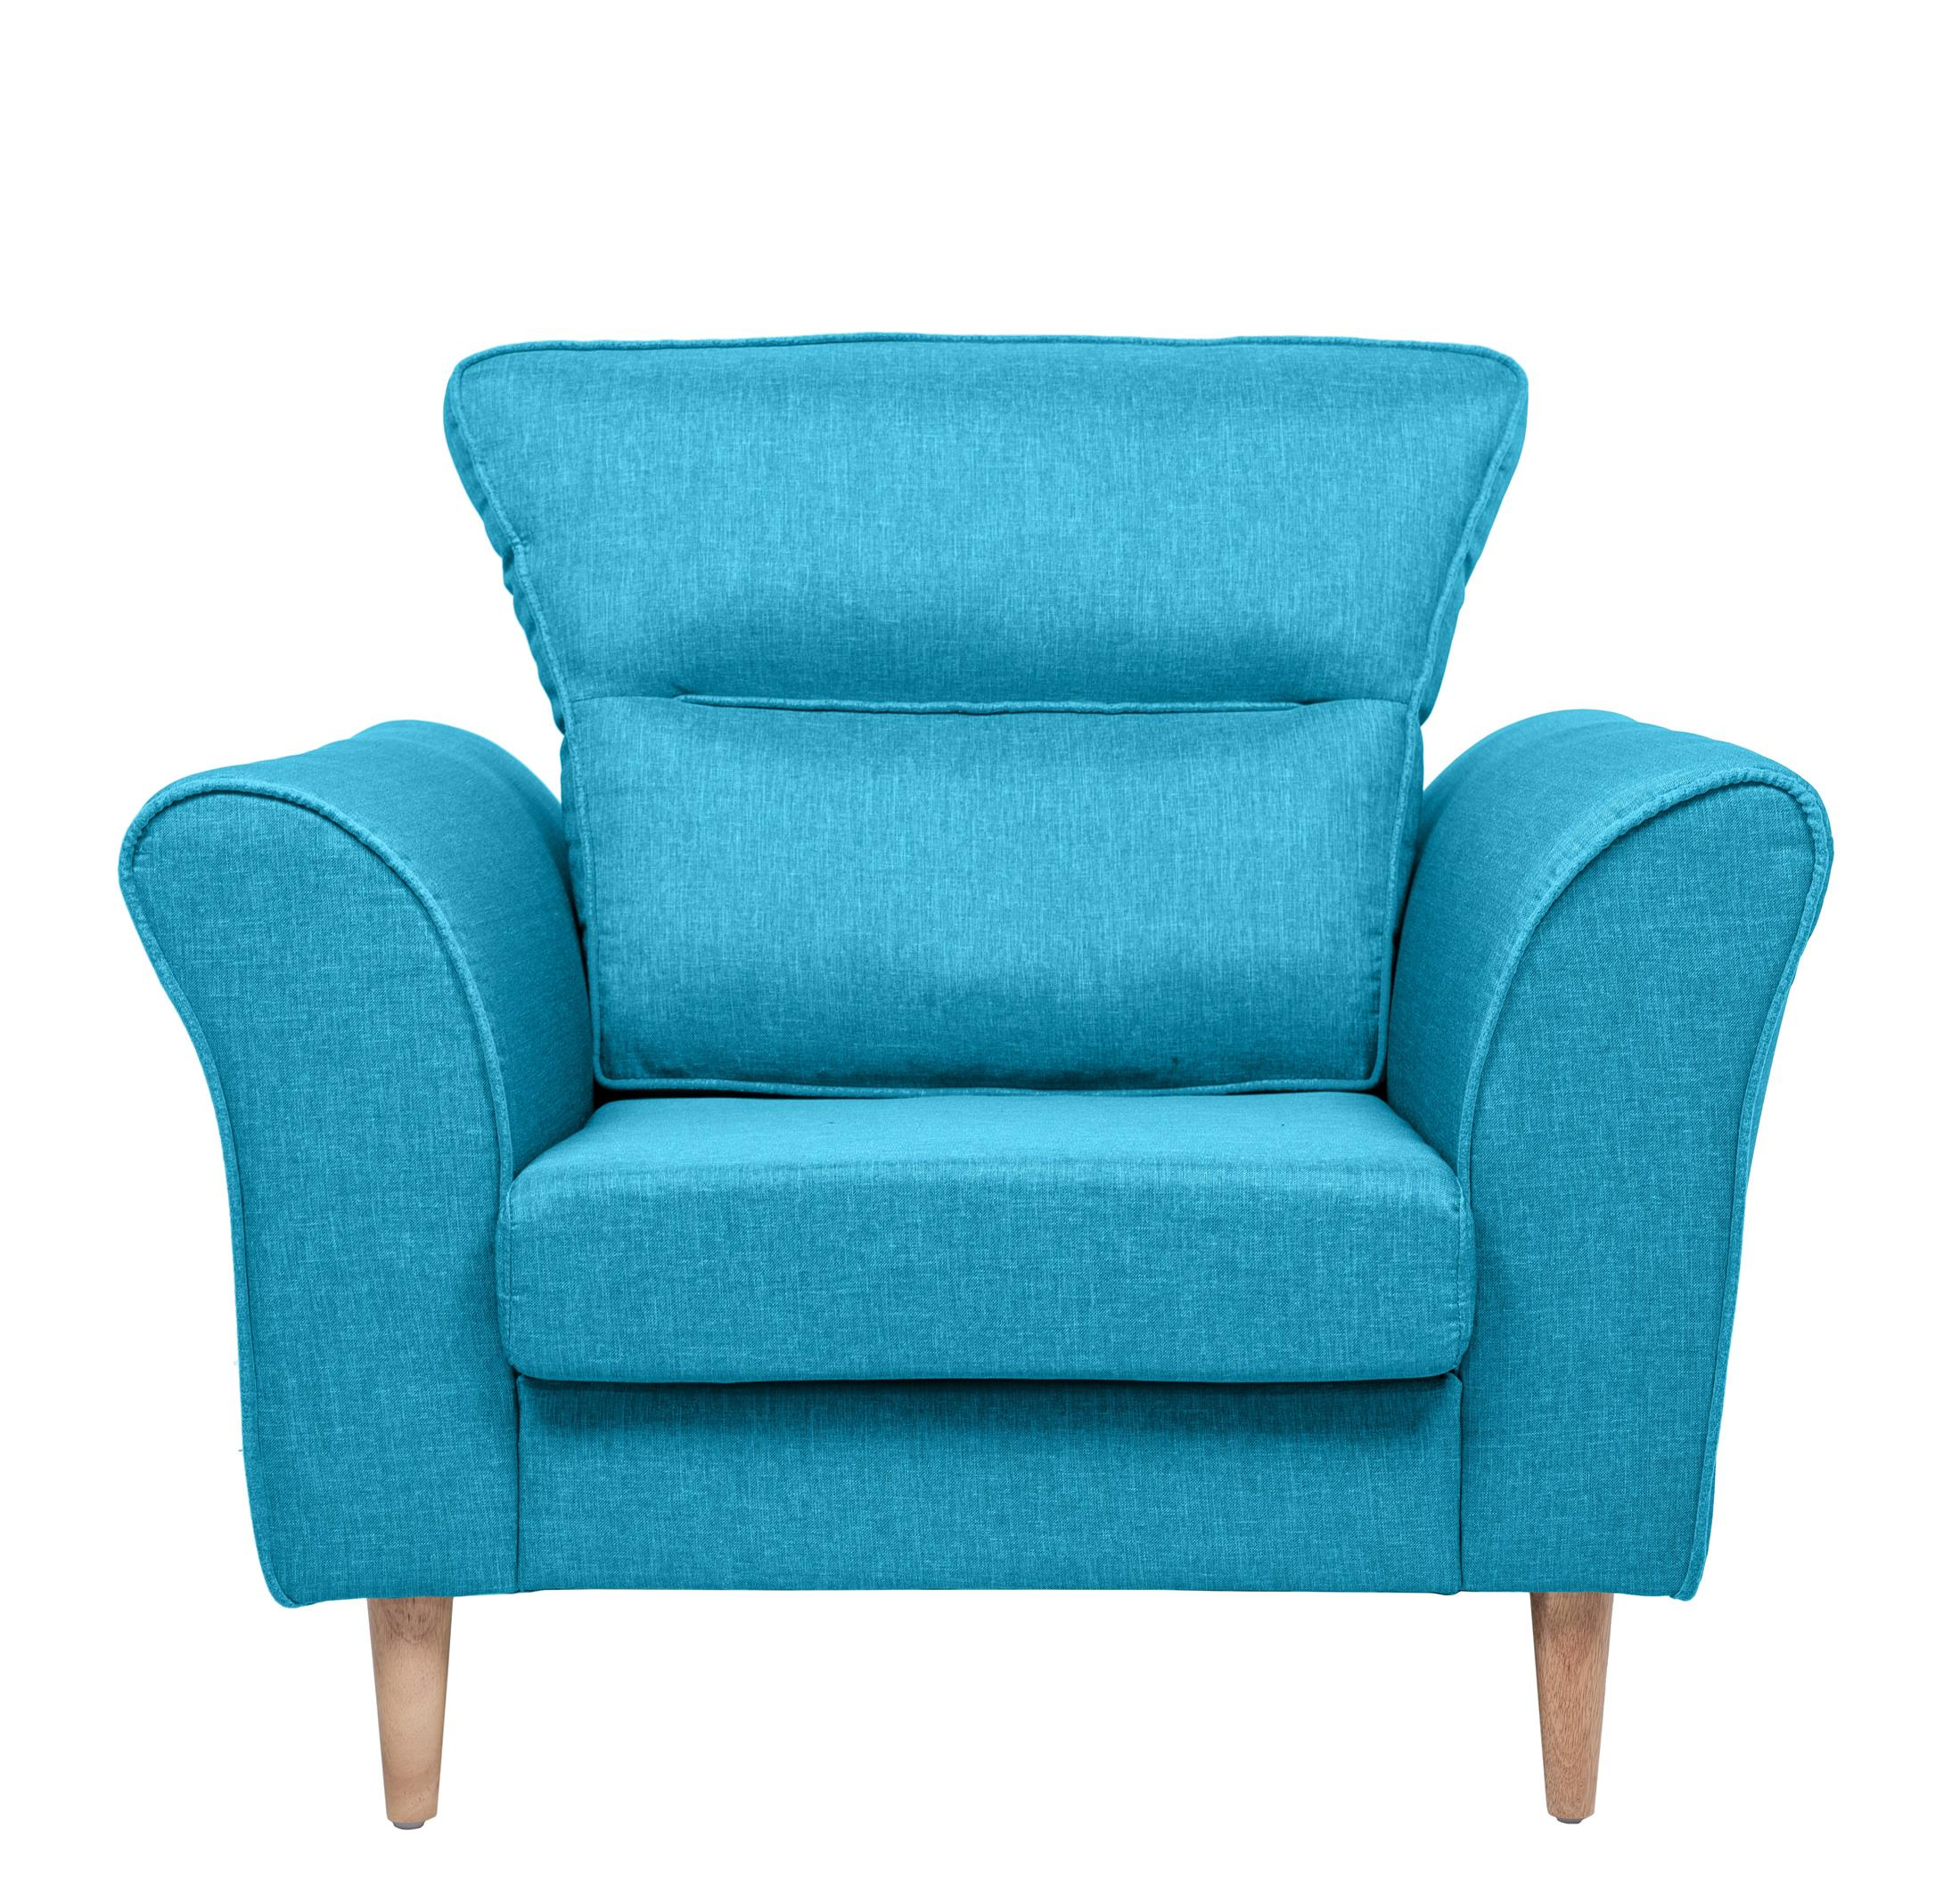 Sofa Menta Single Seater Settee (MN-3132-1S)